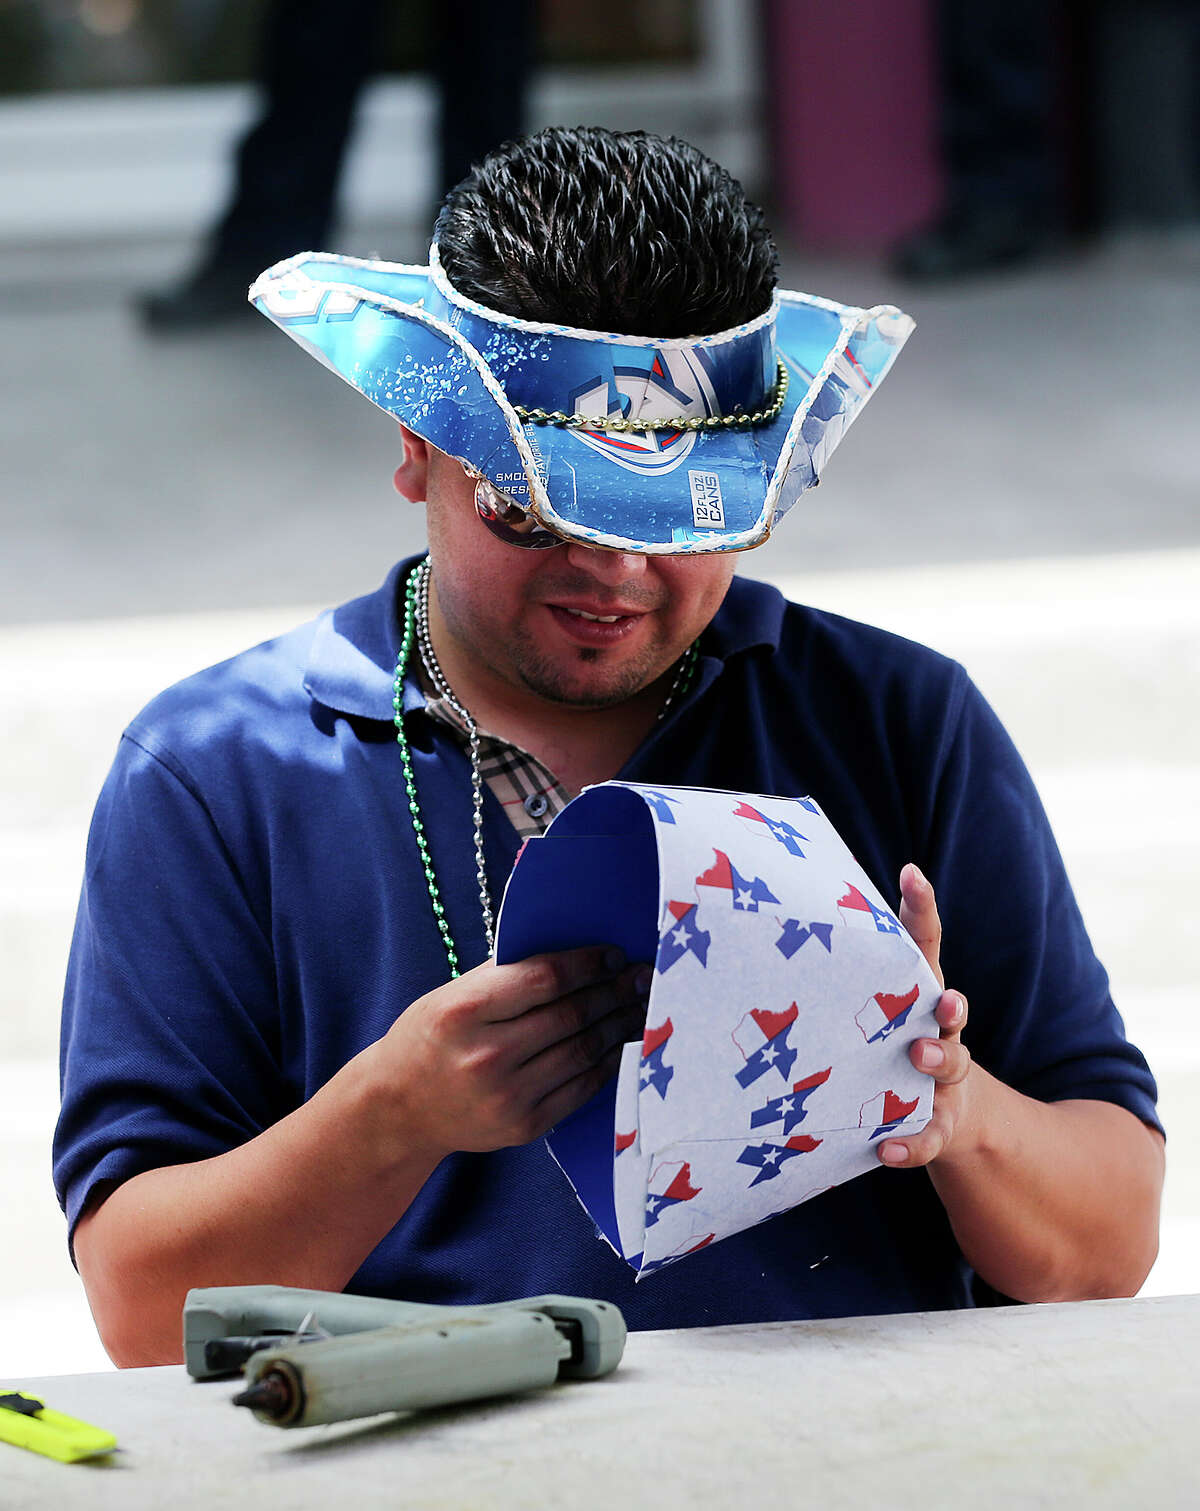 Eric Costilla makes a Texas-themed hat at the Team Beer Hats booth in El Mercado, Monday, Sept. 1, 2014. Costilla and long time friend Adrian Buitron started the company making hats out of beer cartons and giftwraps.